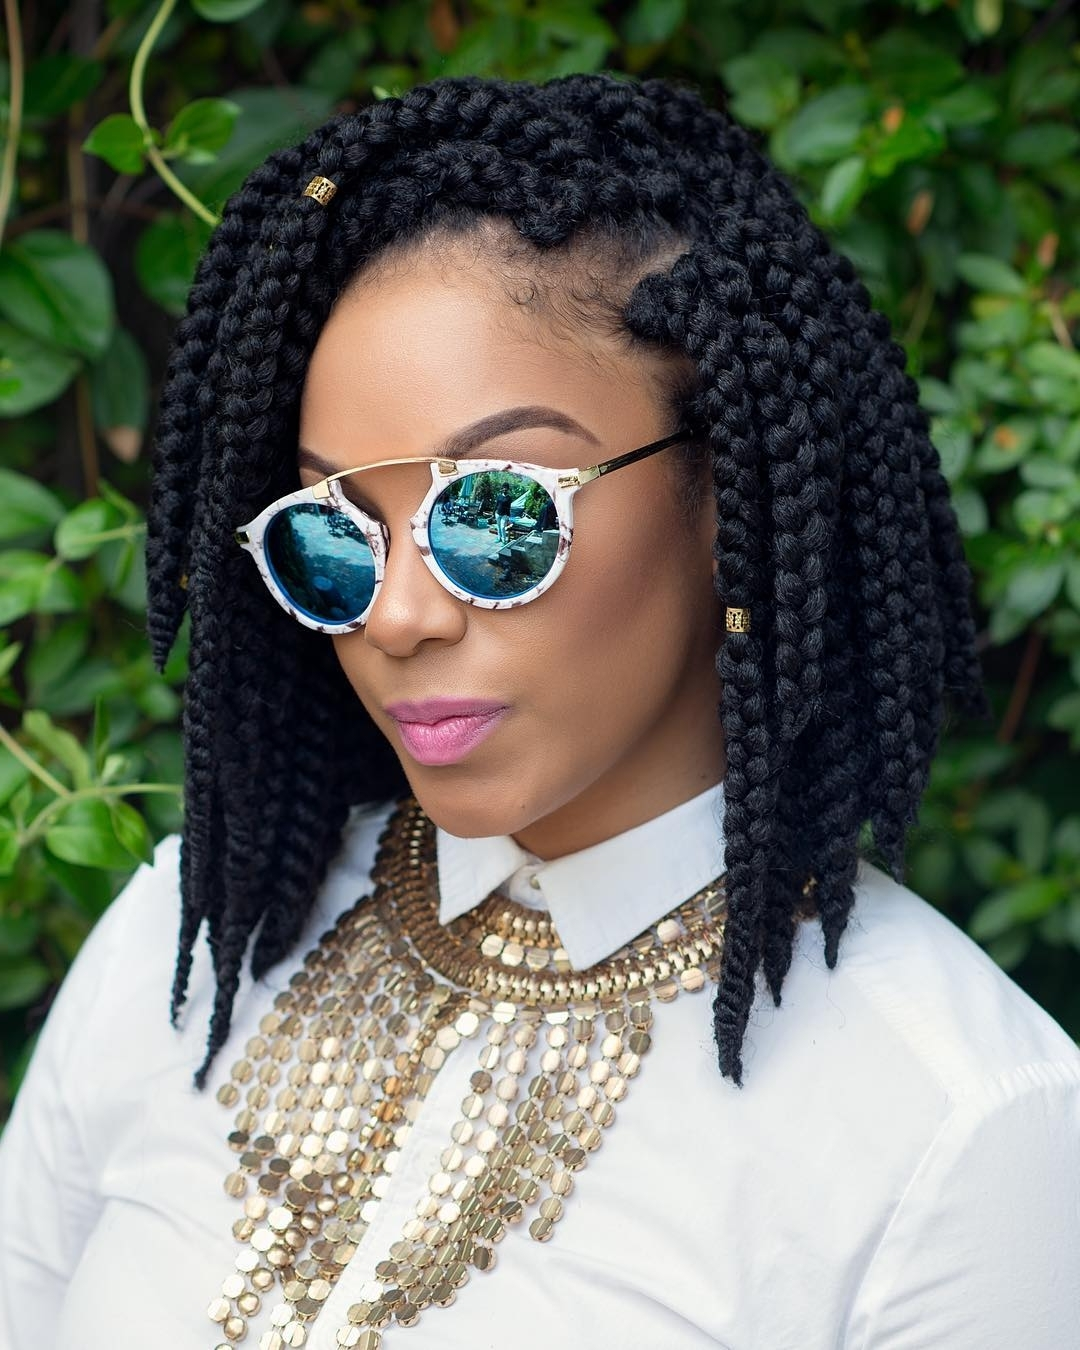 80 Trendy African Braids Hairstyles – Embrace The Braiding Art Regarding Well Known African Braided Hairstyles (View 13 of 15)